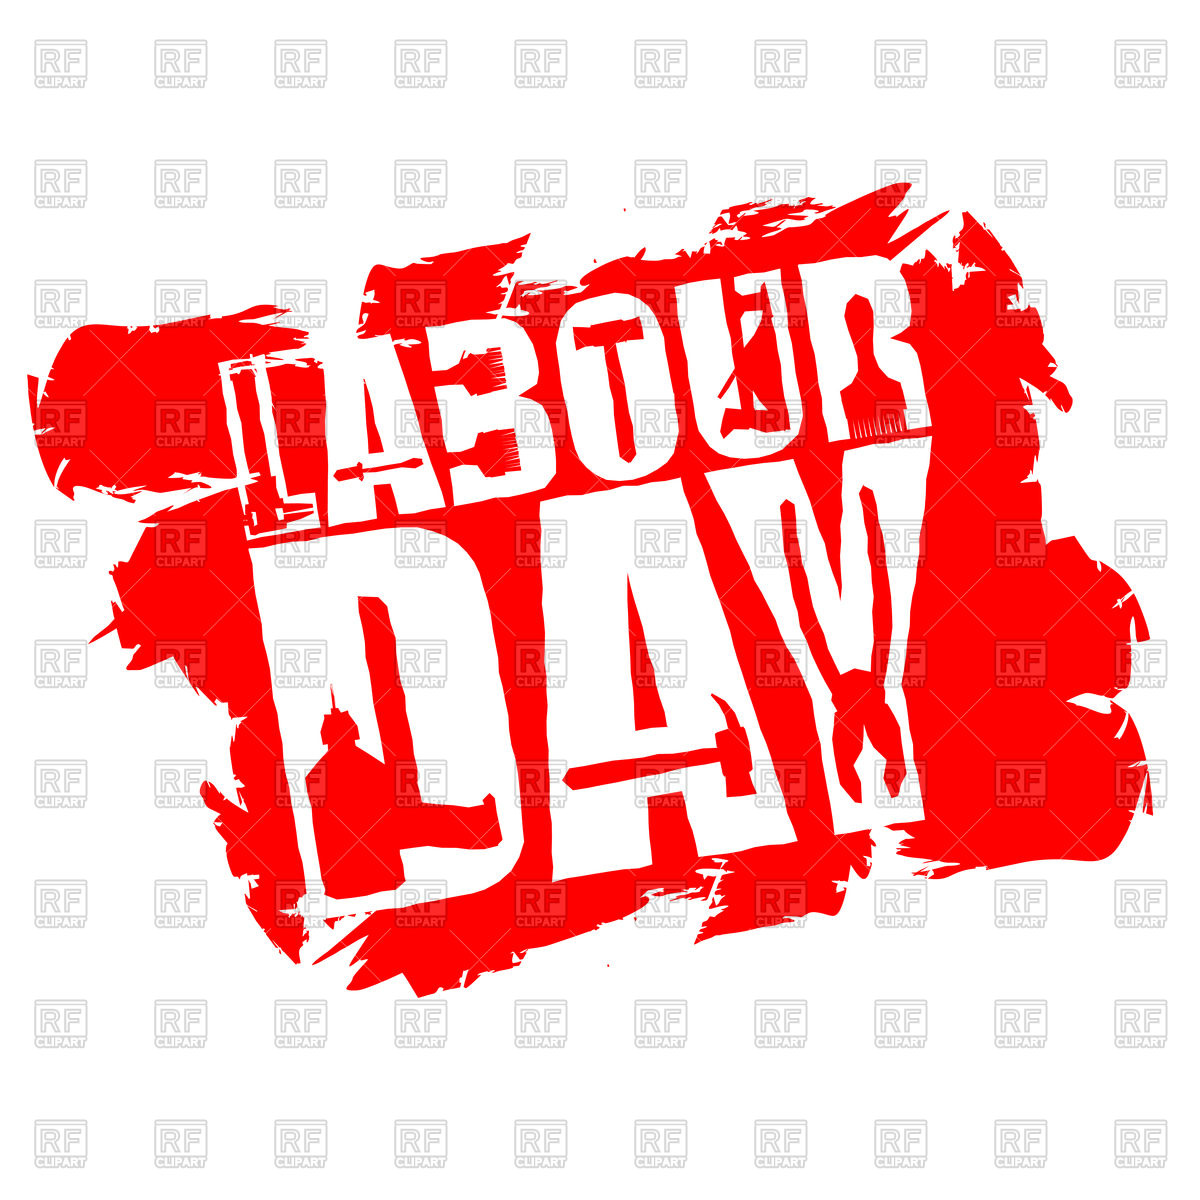 Labor Day Clipart At Getdrawings Com Free For Personal Use Labor